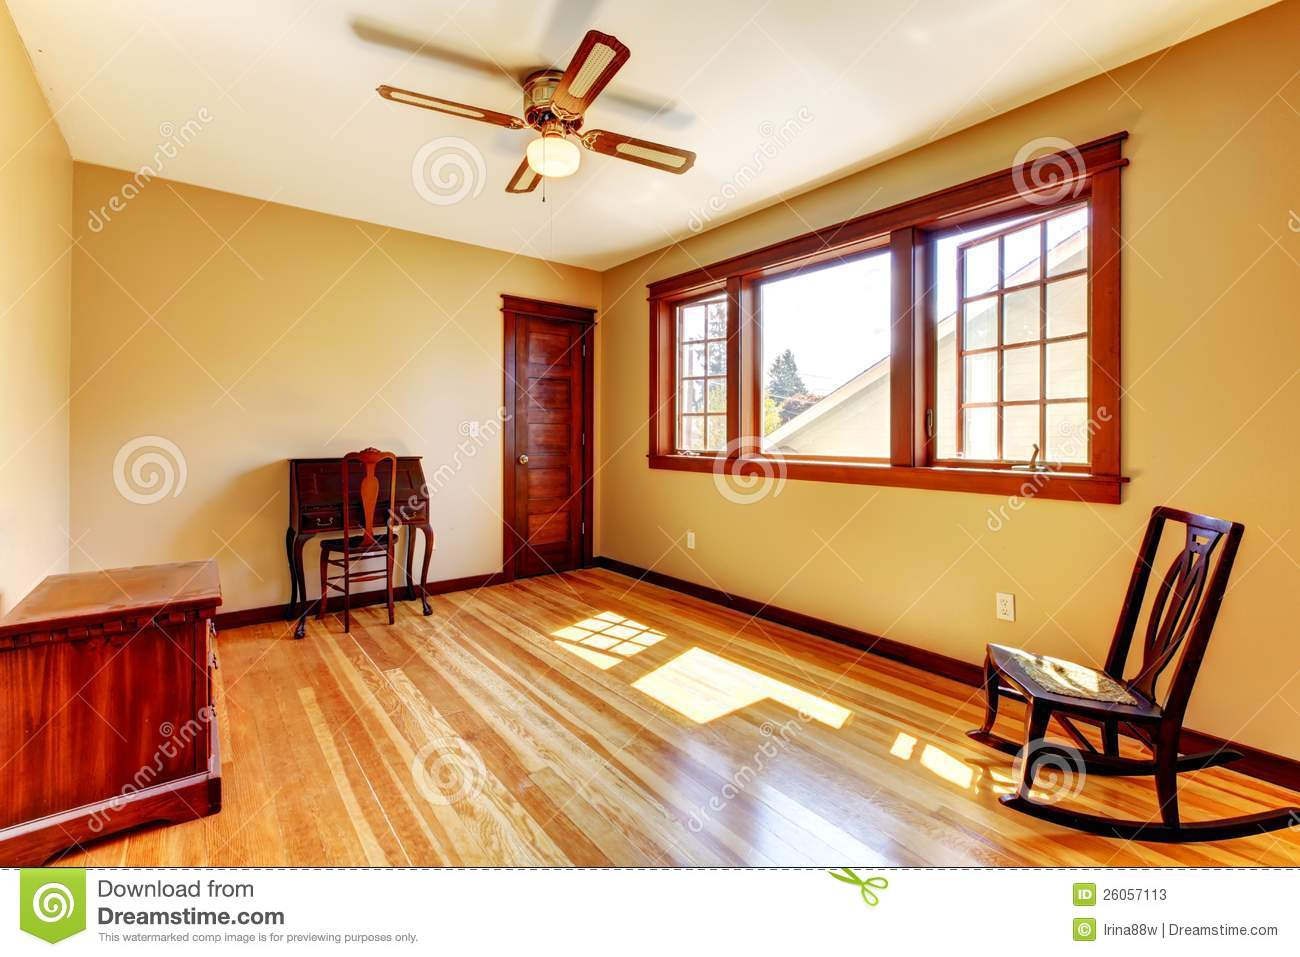 Yellow Walls Empty Room With Yellow Walls And Hardwood Floorstock Photos